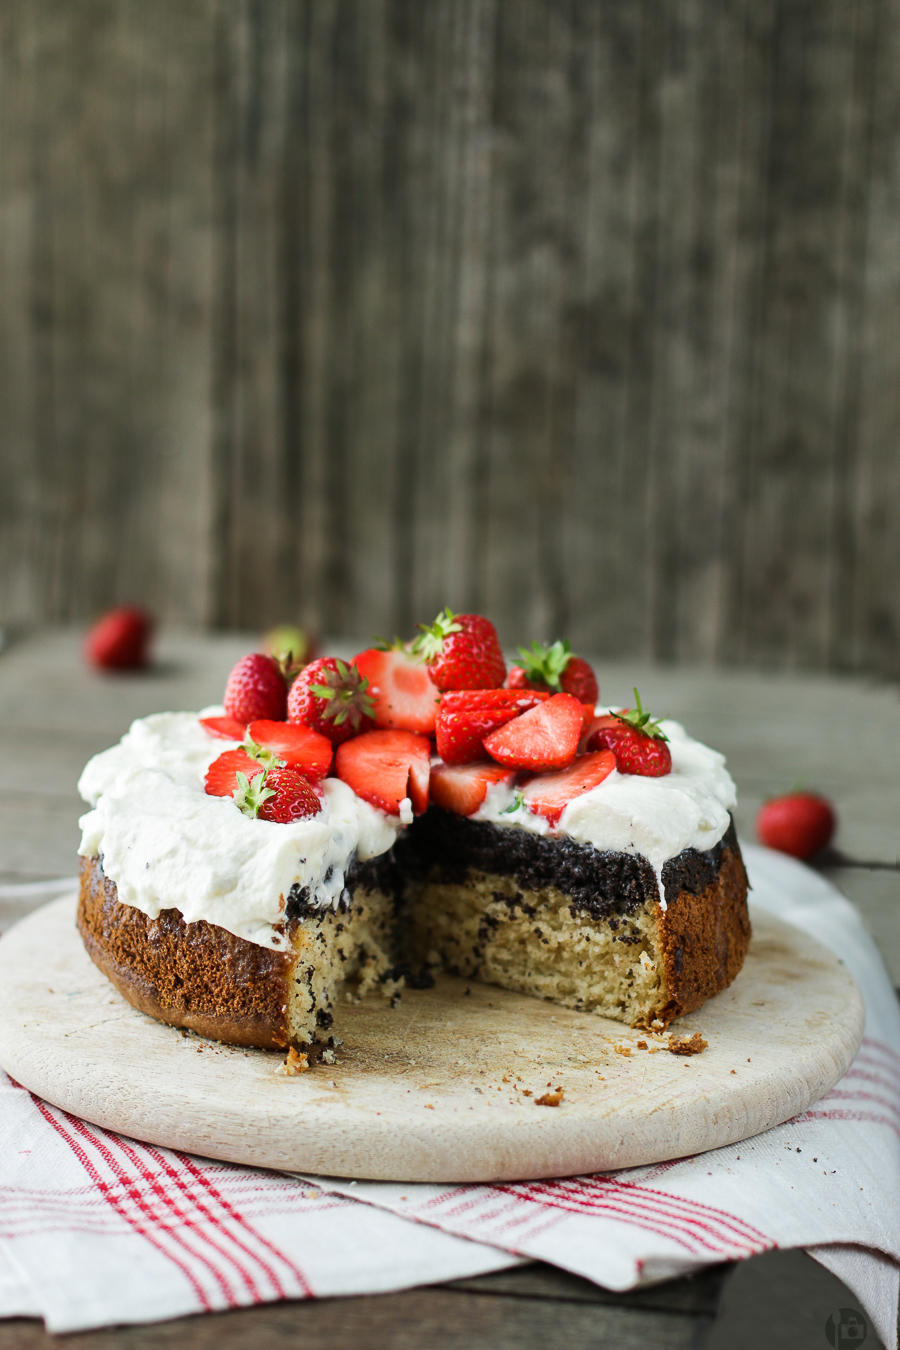 Strawberry and Poppy Seed Upside Down Cake Photo